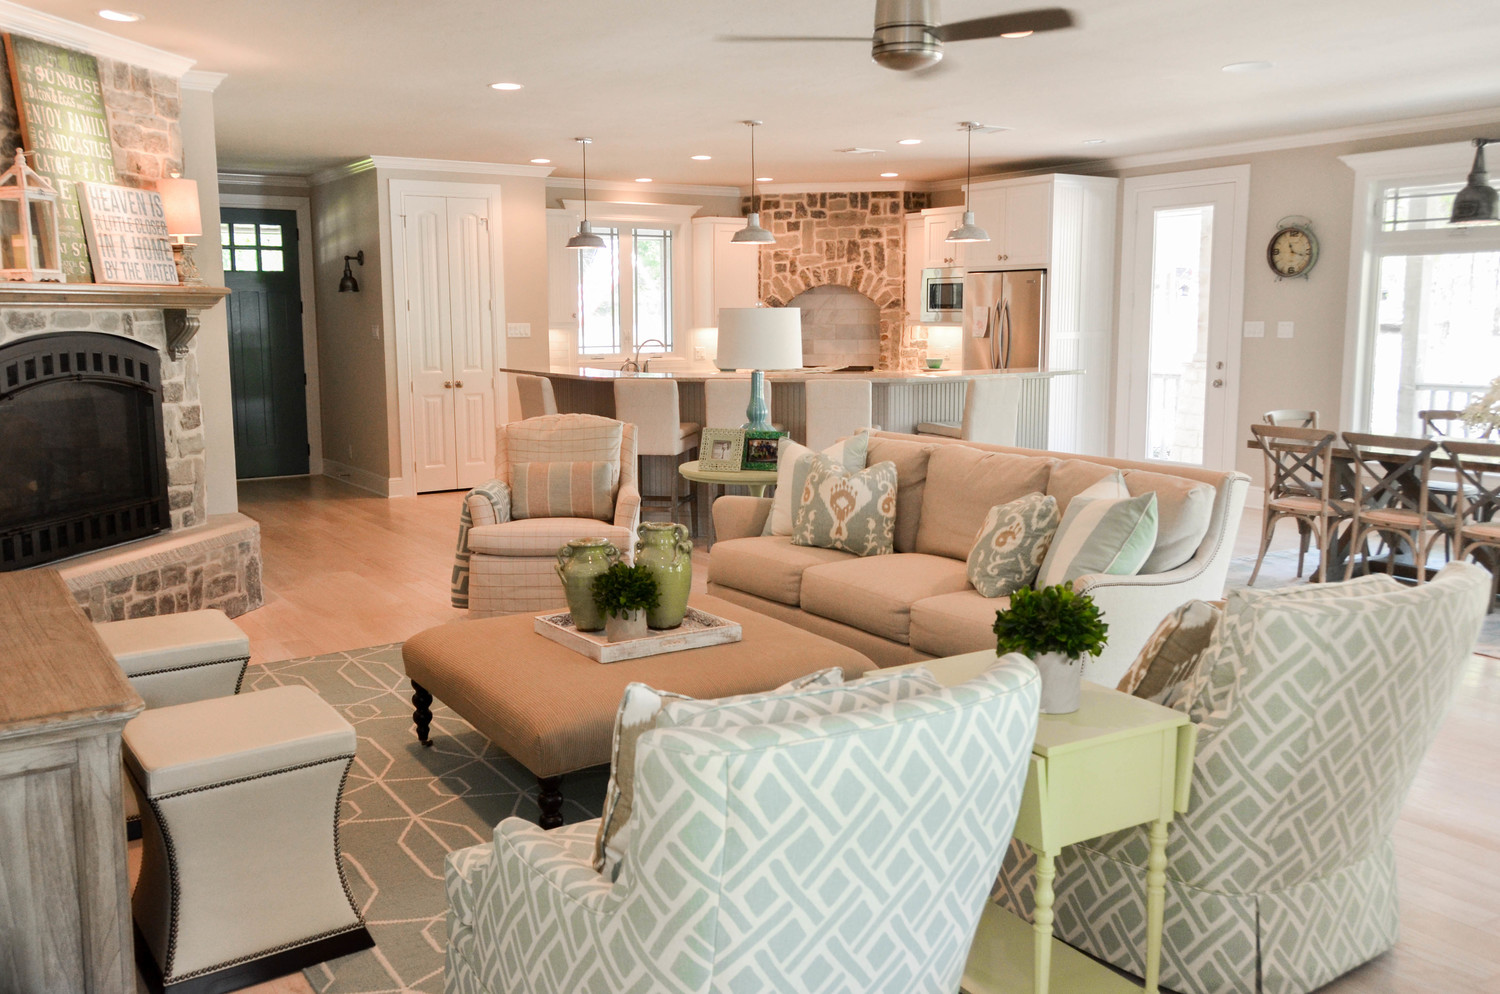 Casual farmhouse country interior design. Open concept lake house design.